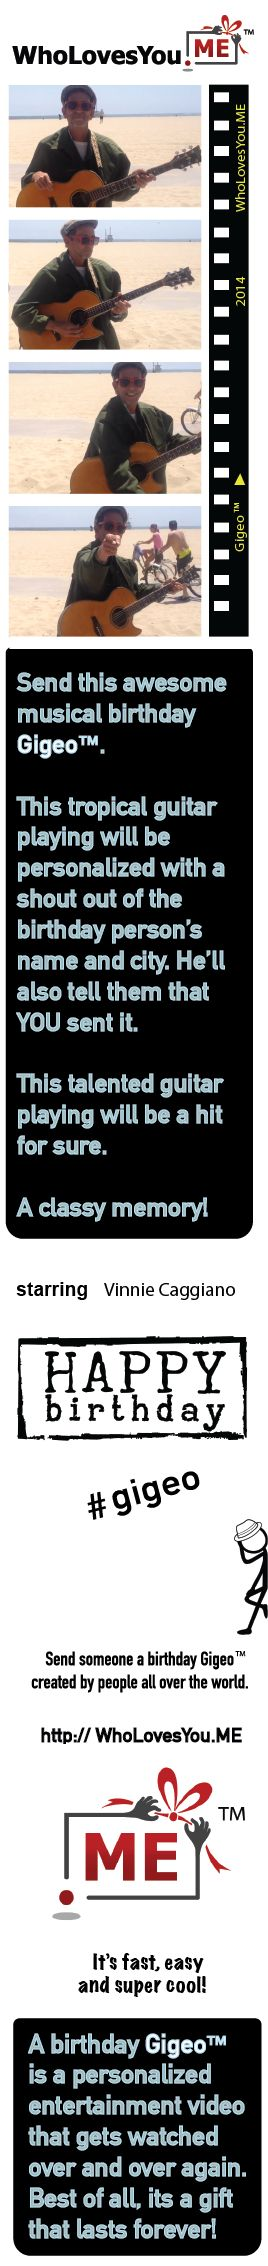 Nothing like a zippy rendition of Happy Birthday played on an electric guitar to send best wishes for a special day. Vinnie Caggliano sends an original personalized Gigeo™. Definitely sets the stage for a cool celebration!